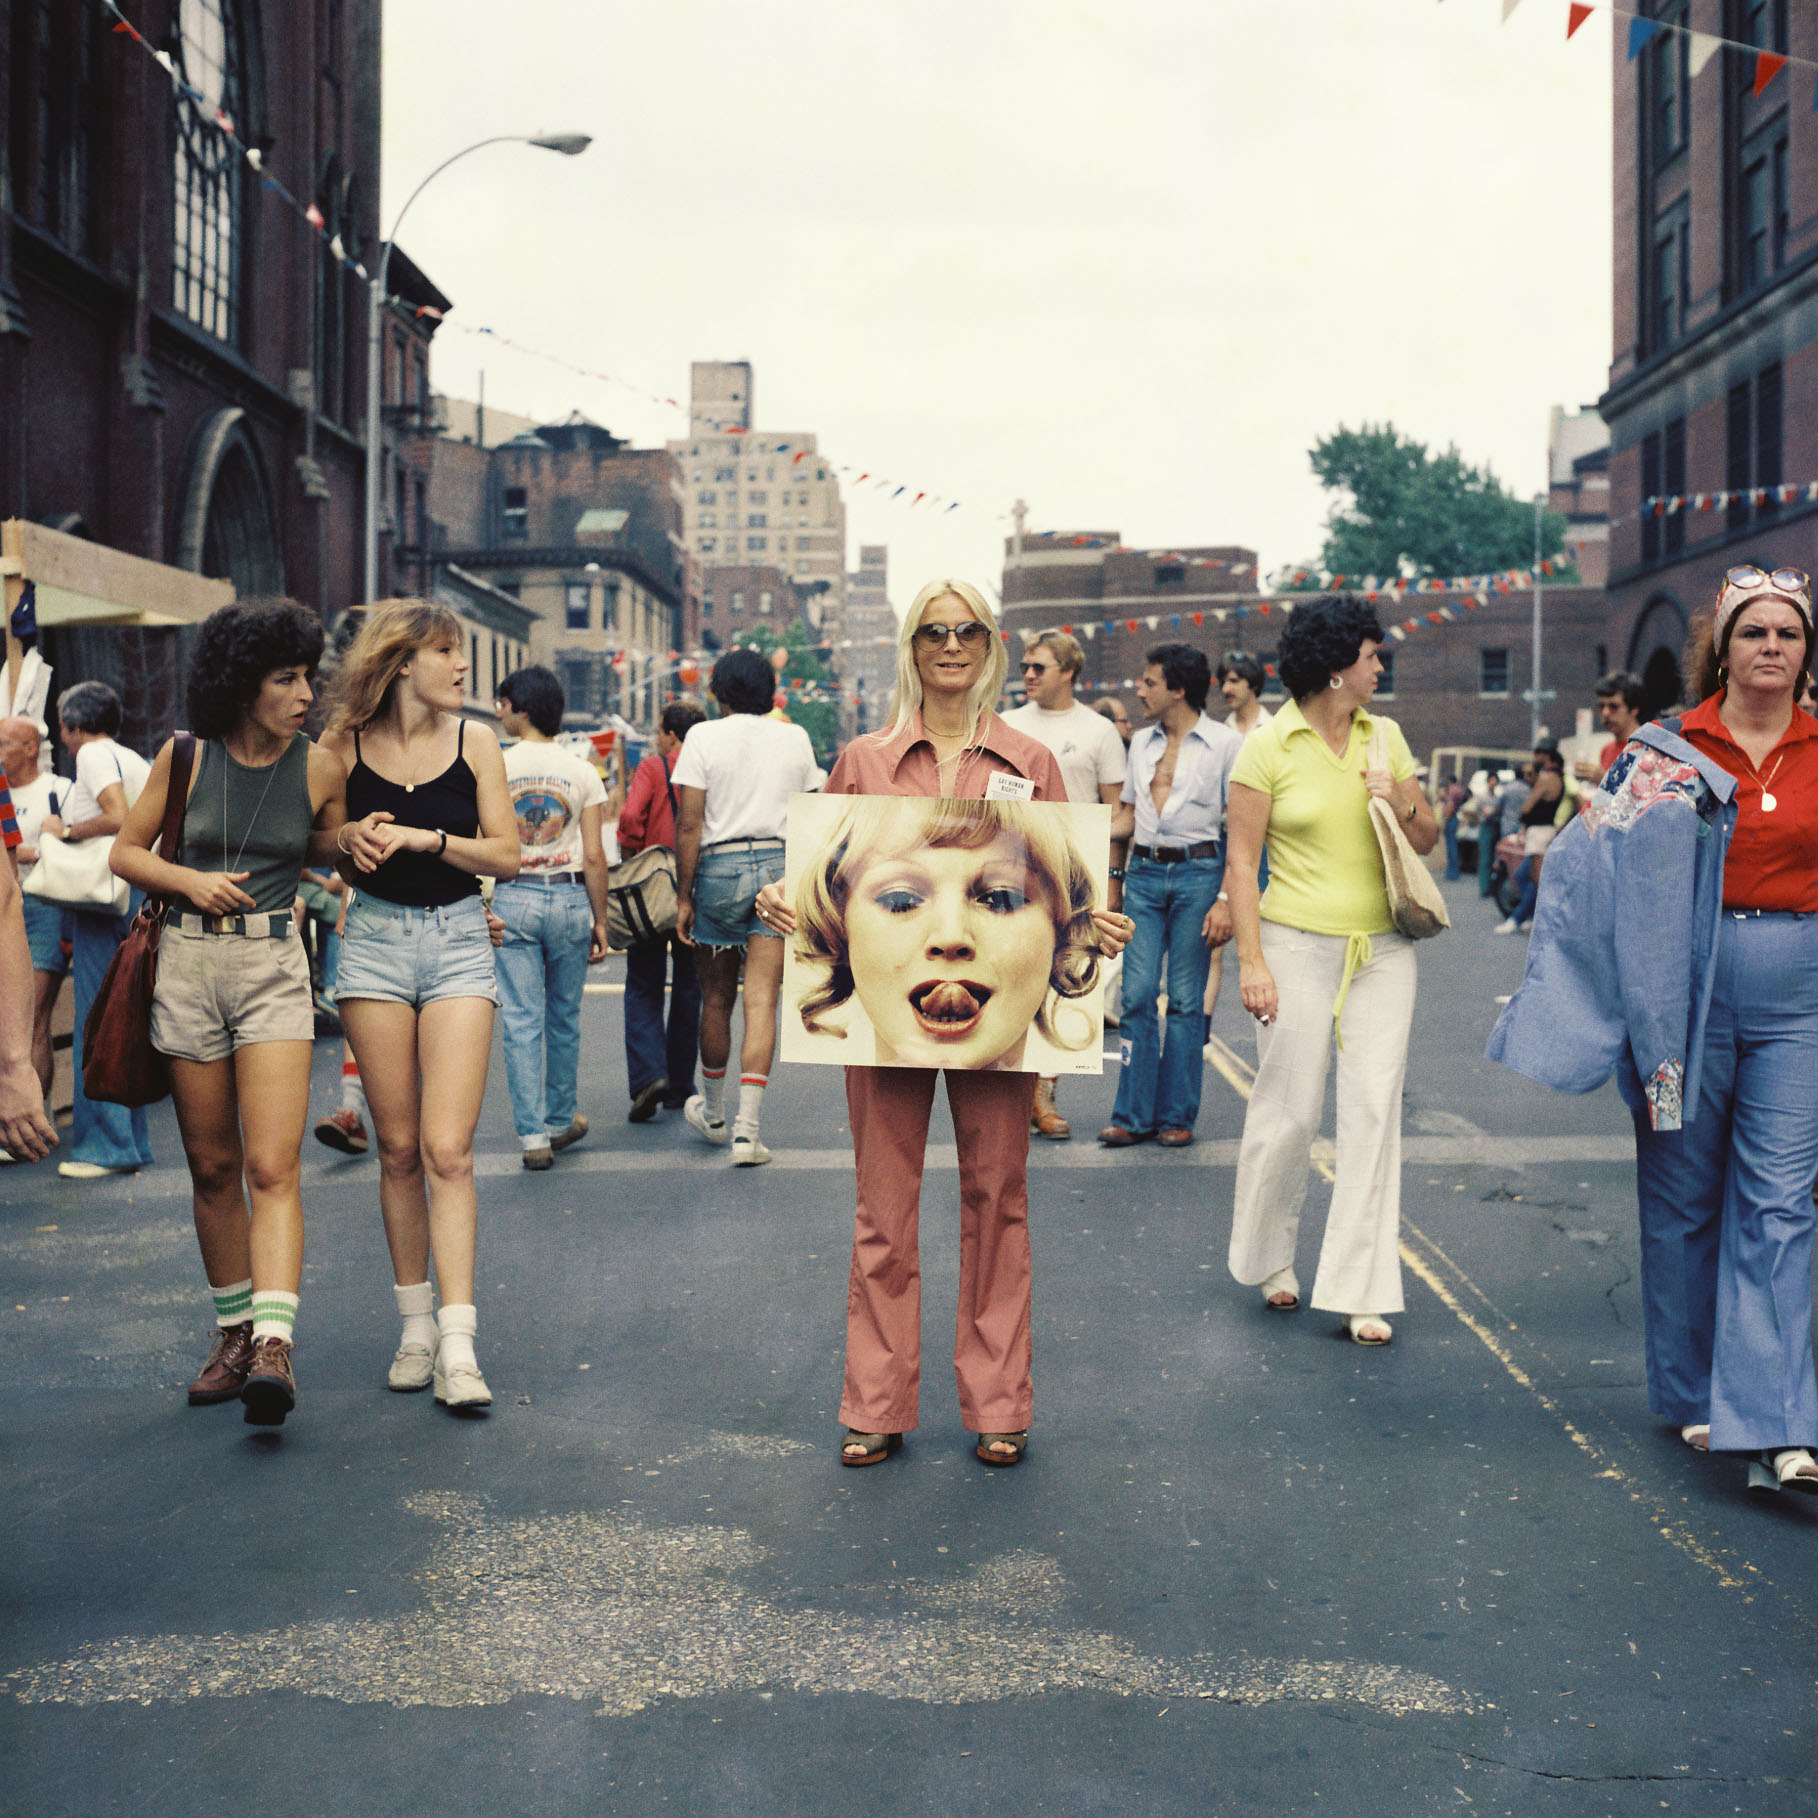 Natalia LL at a demonstration in defence of the rights of sexual minorities, New York, 1977; colour photography. Courtesy of the artist and Lokal_30 Gallery in Warsaw